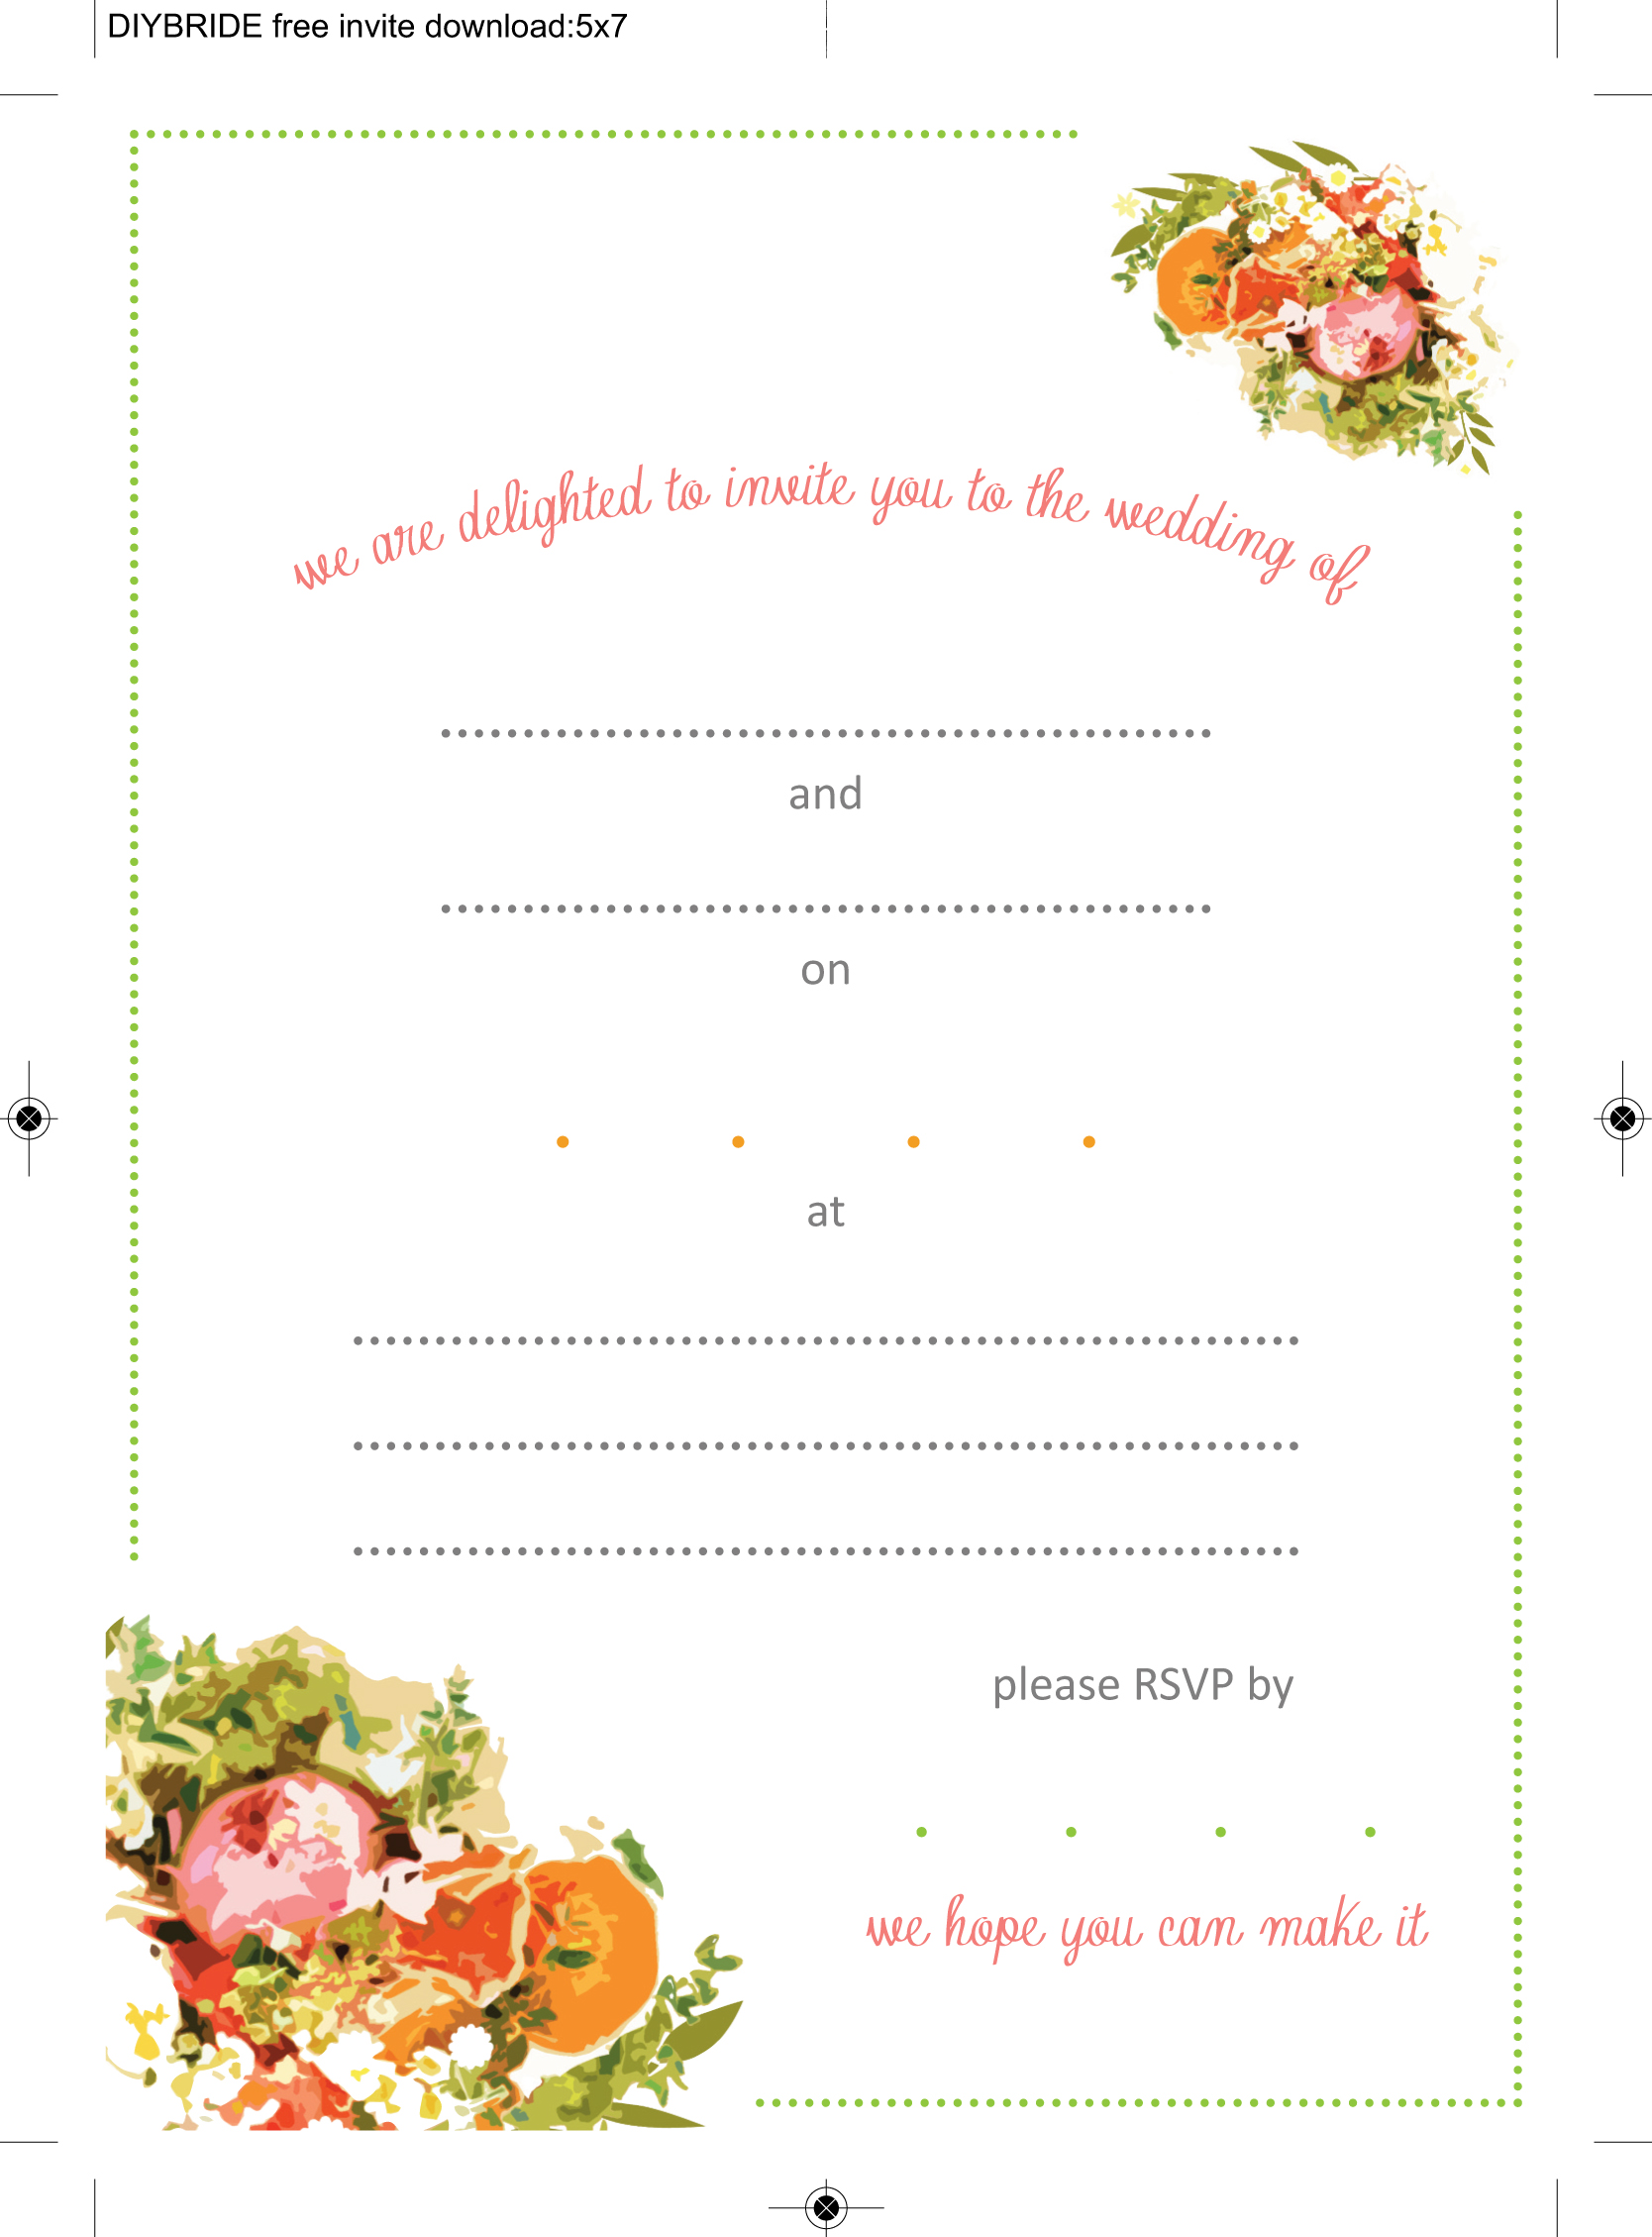 Wedding Invitation Templates That Are Cute And Easy To Make - Make your own wedding invitations free templates